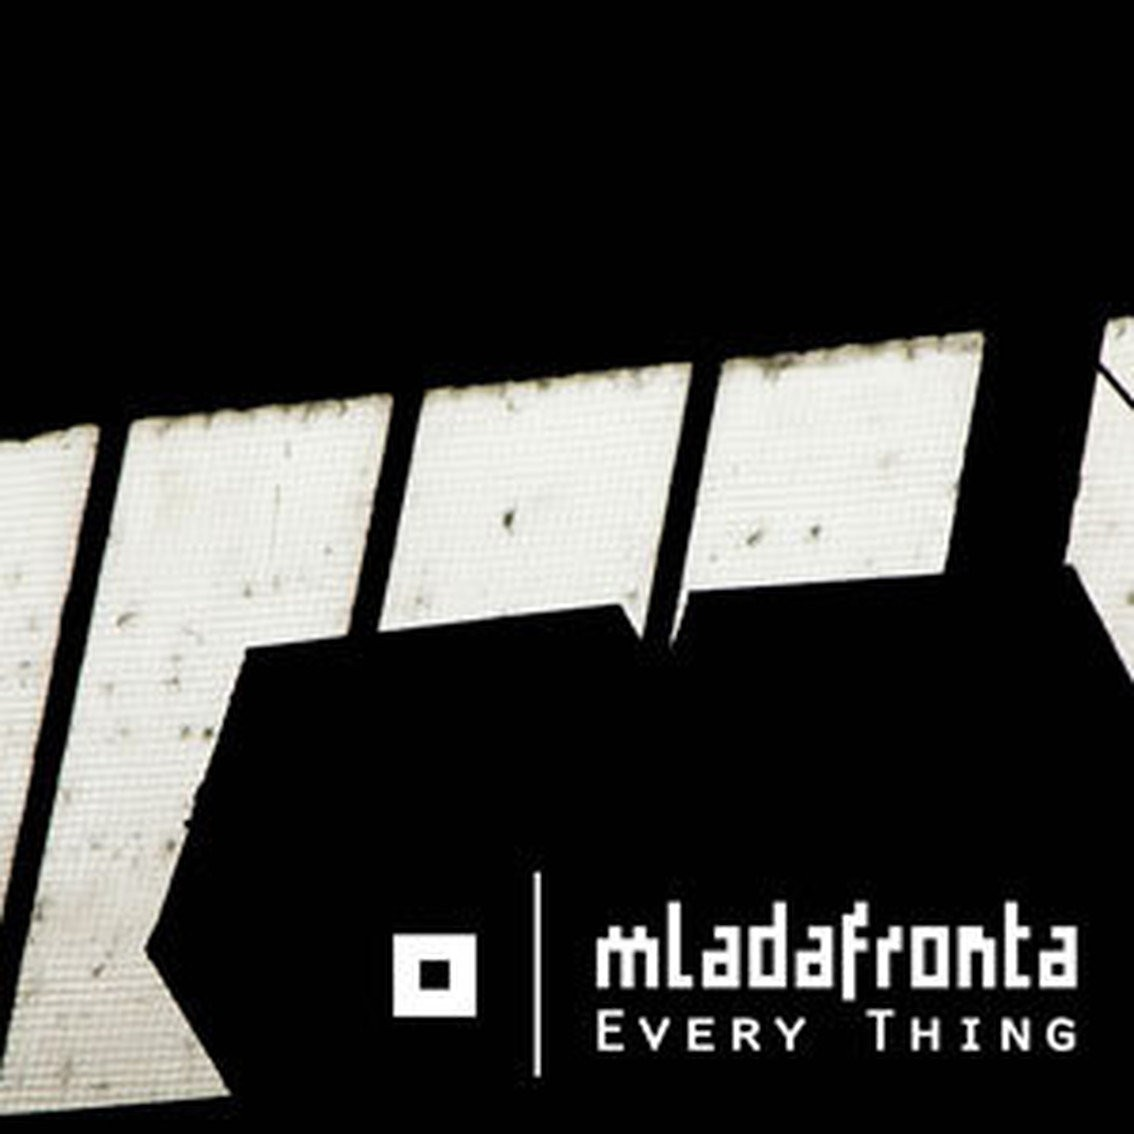 Massive Mlada Fronta 10CD boxset available now at special price for a limited time